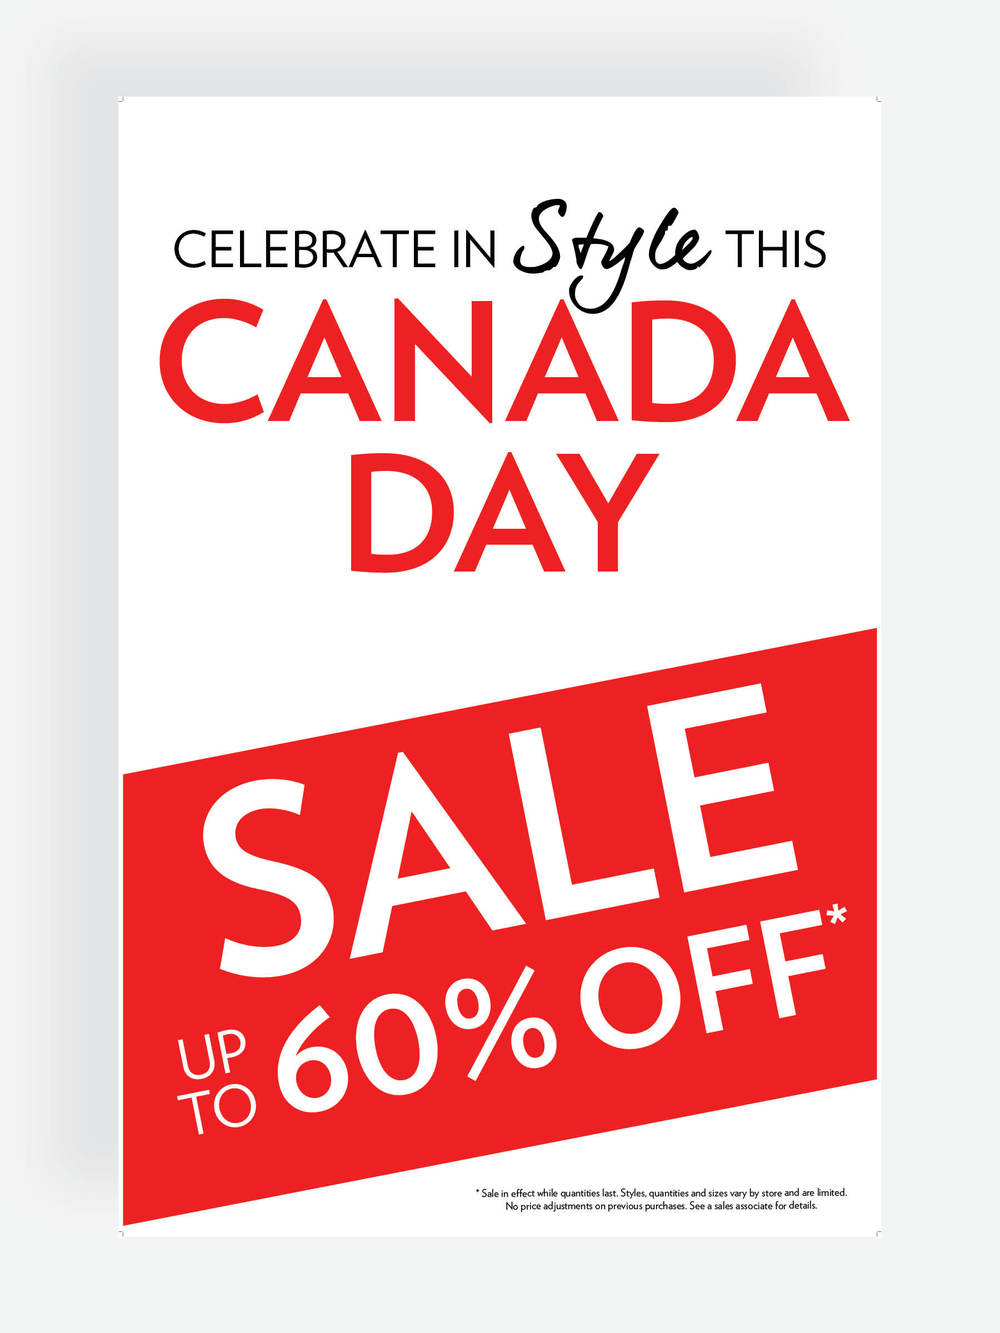 hr2 Canada Day Store Signage